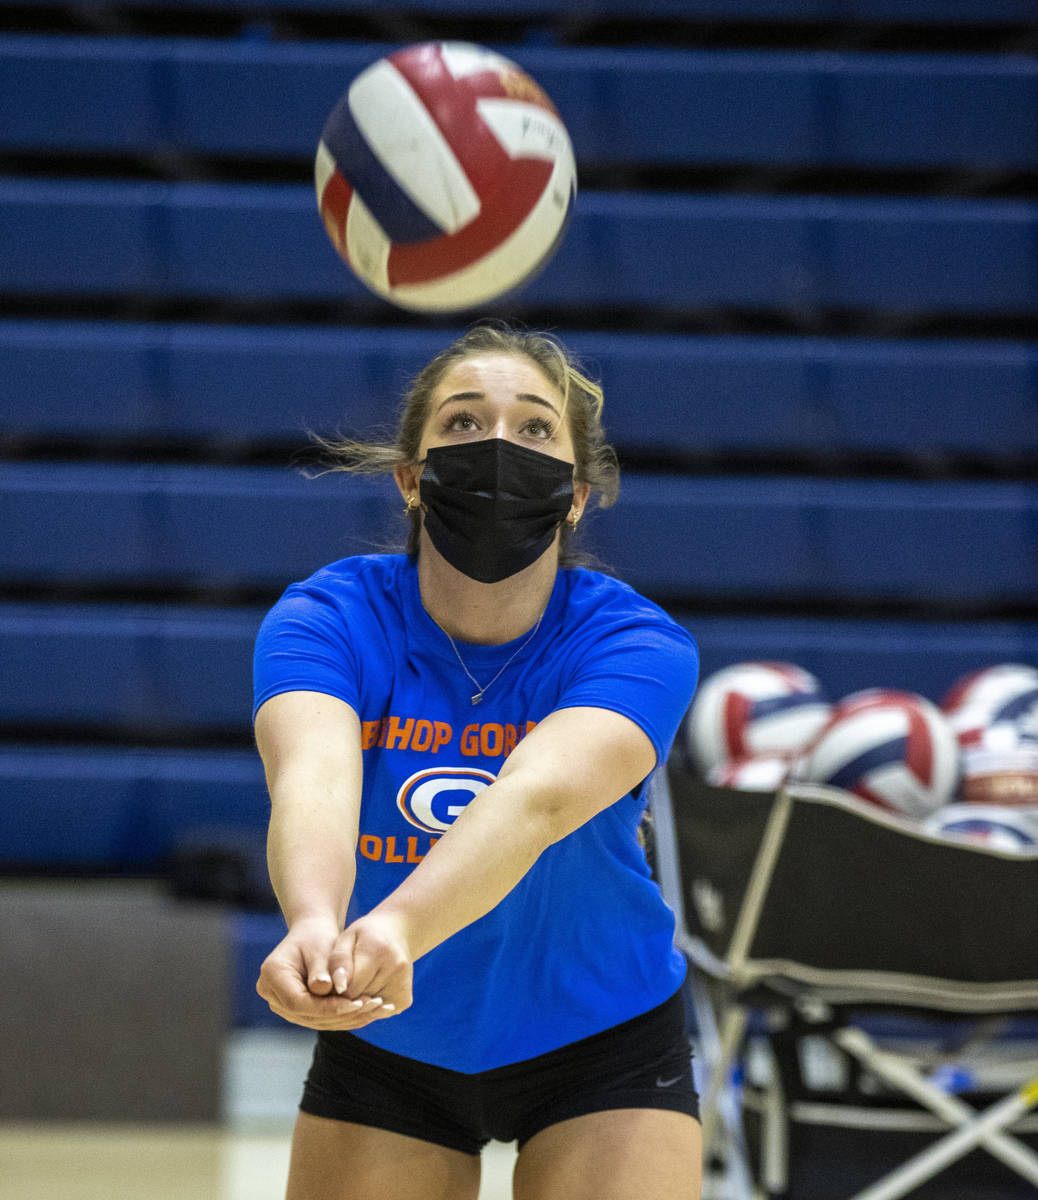 Morgan Mixer returns the ball during a varsity girls volleyball practice at Bishop Gorman High ...